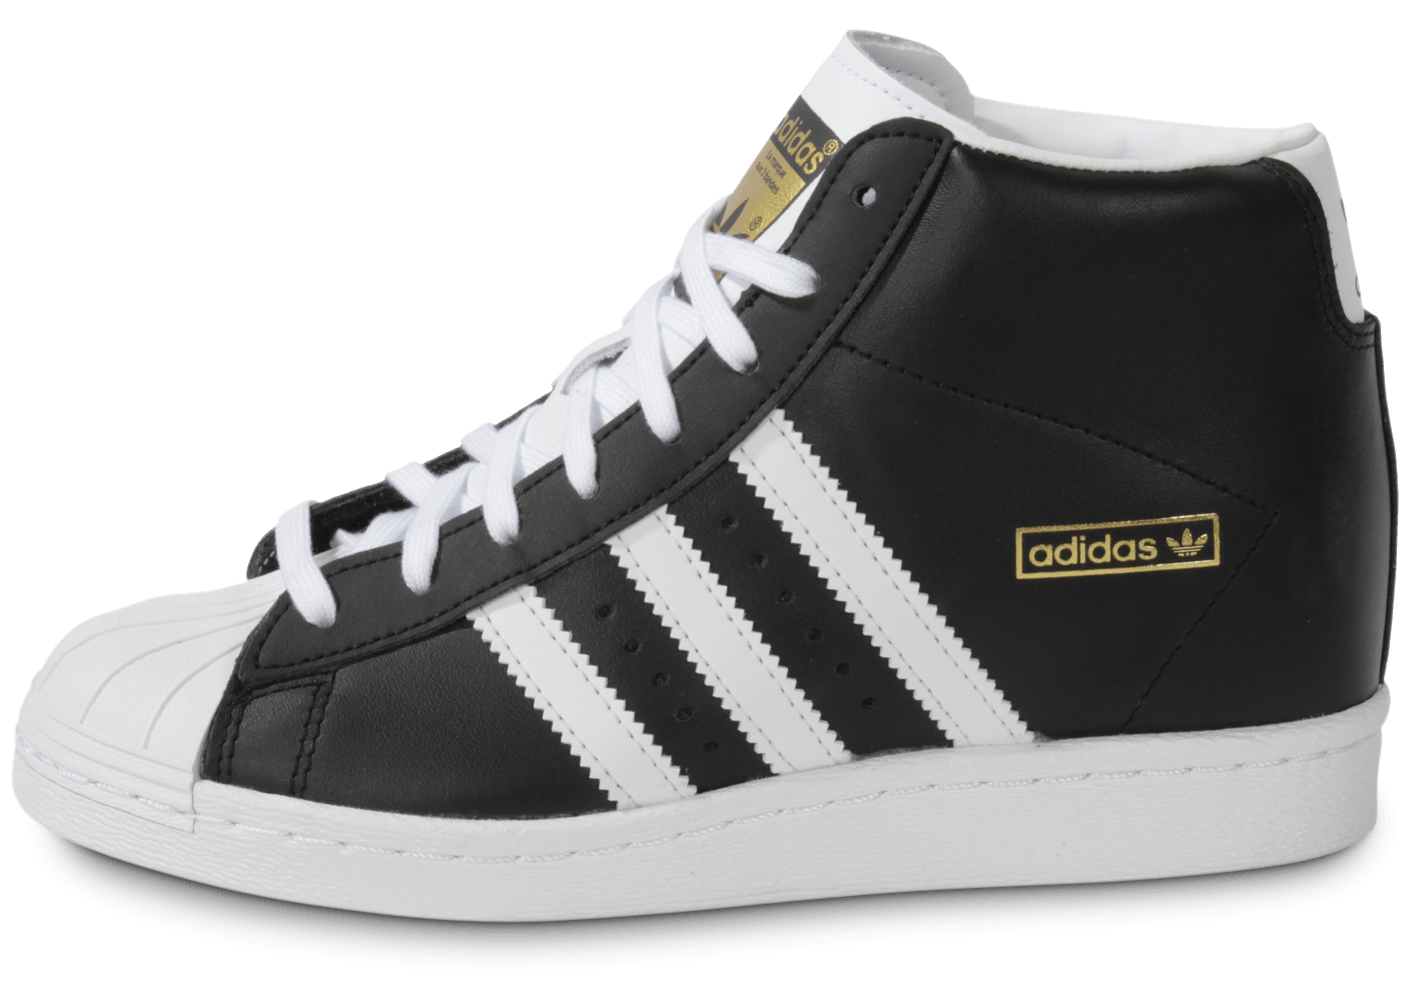 adidas Superstar Up Compensee Noire